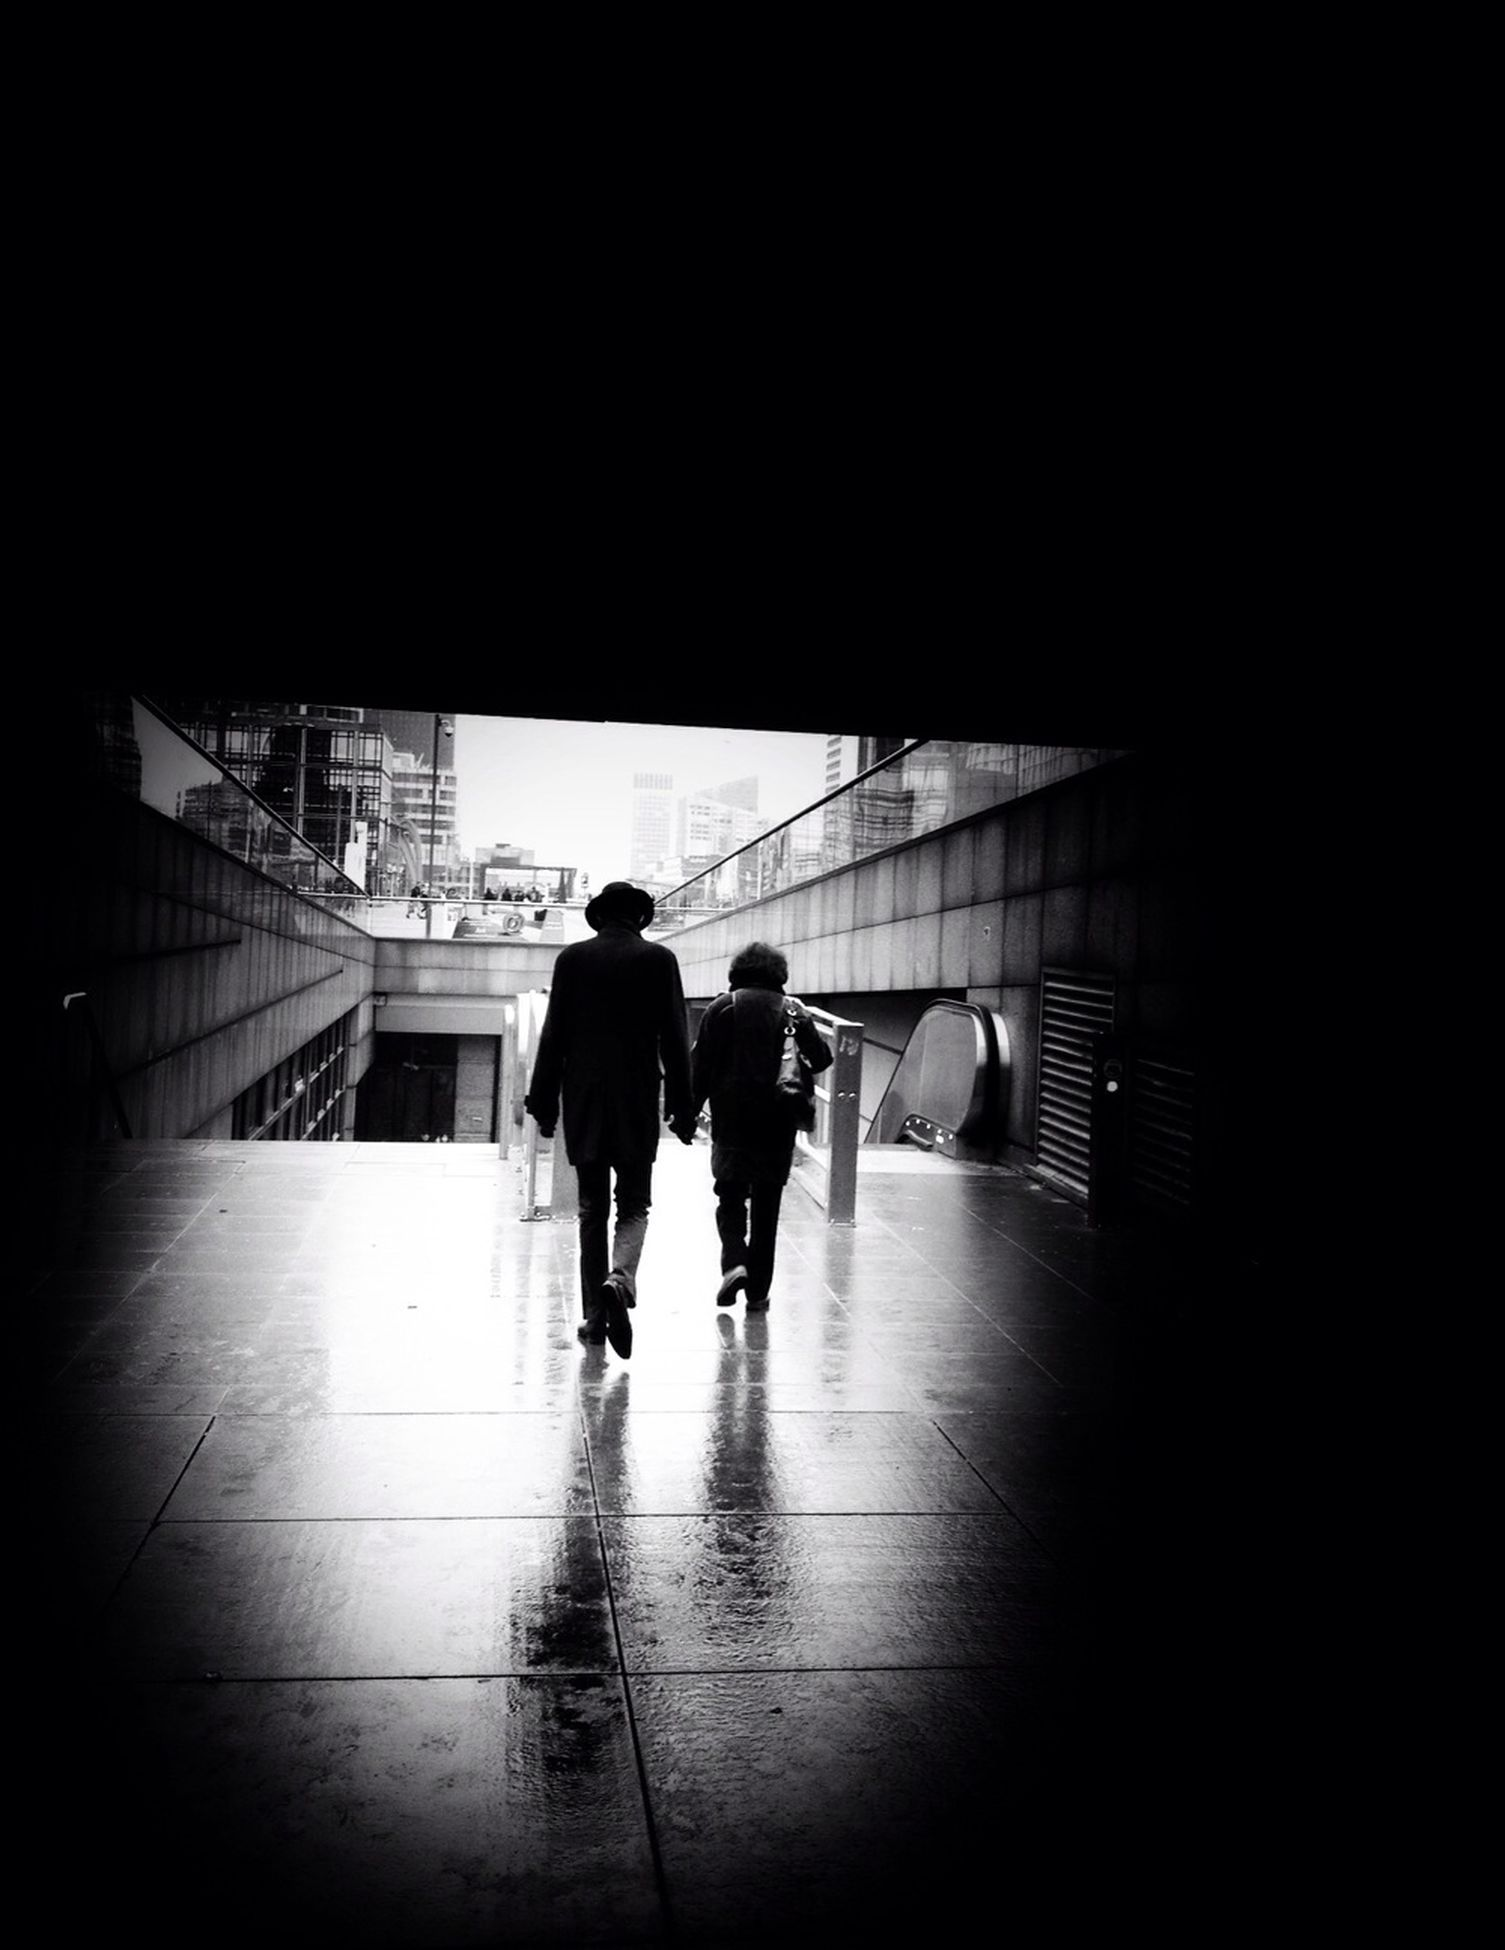 indoors, walking, full length, men, silhouette, rear view, lifestyles, architecture, built structure, person, togetherness, leisure activity, tunnel, city life, standing, on the move, reflection